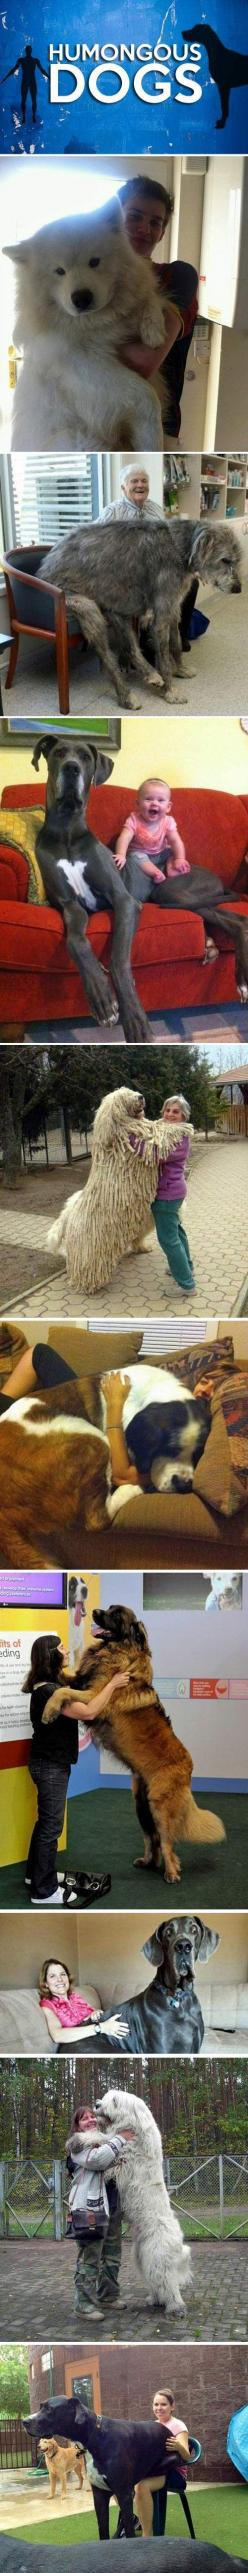 Humongous Dogs… I want them all!: Great Danes, Huge Dogs, Humongous Dogs I, Puppy, Irish Wolfhound, Big Dogs, Dogs Love, Animal